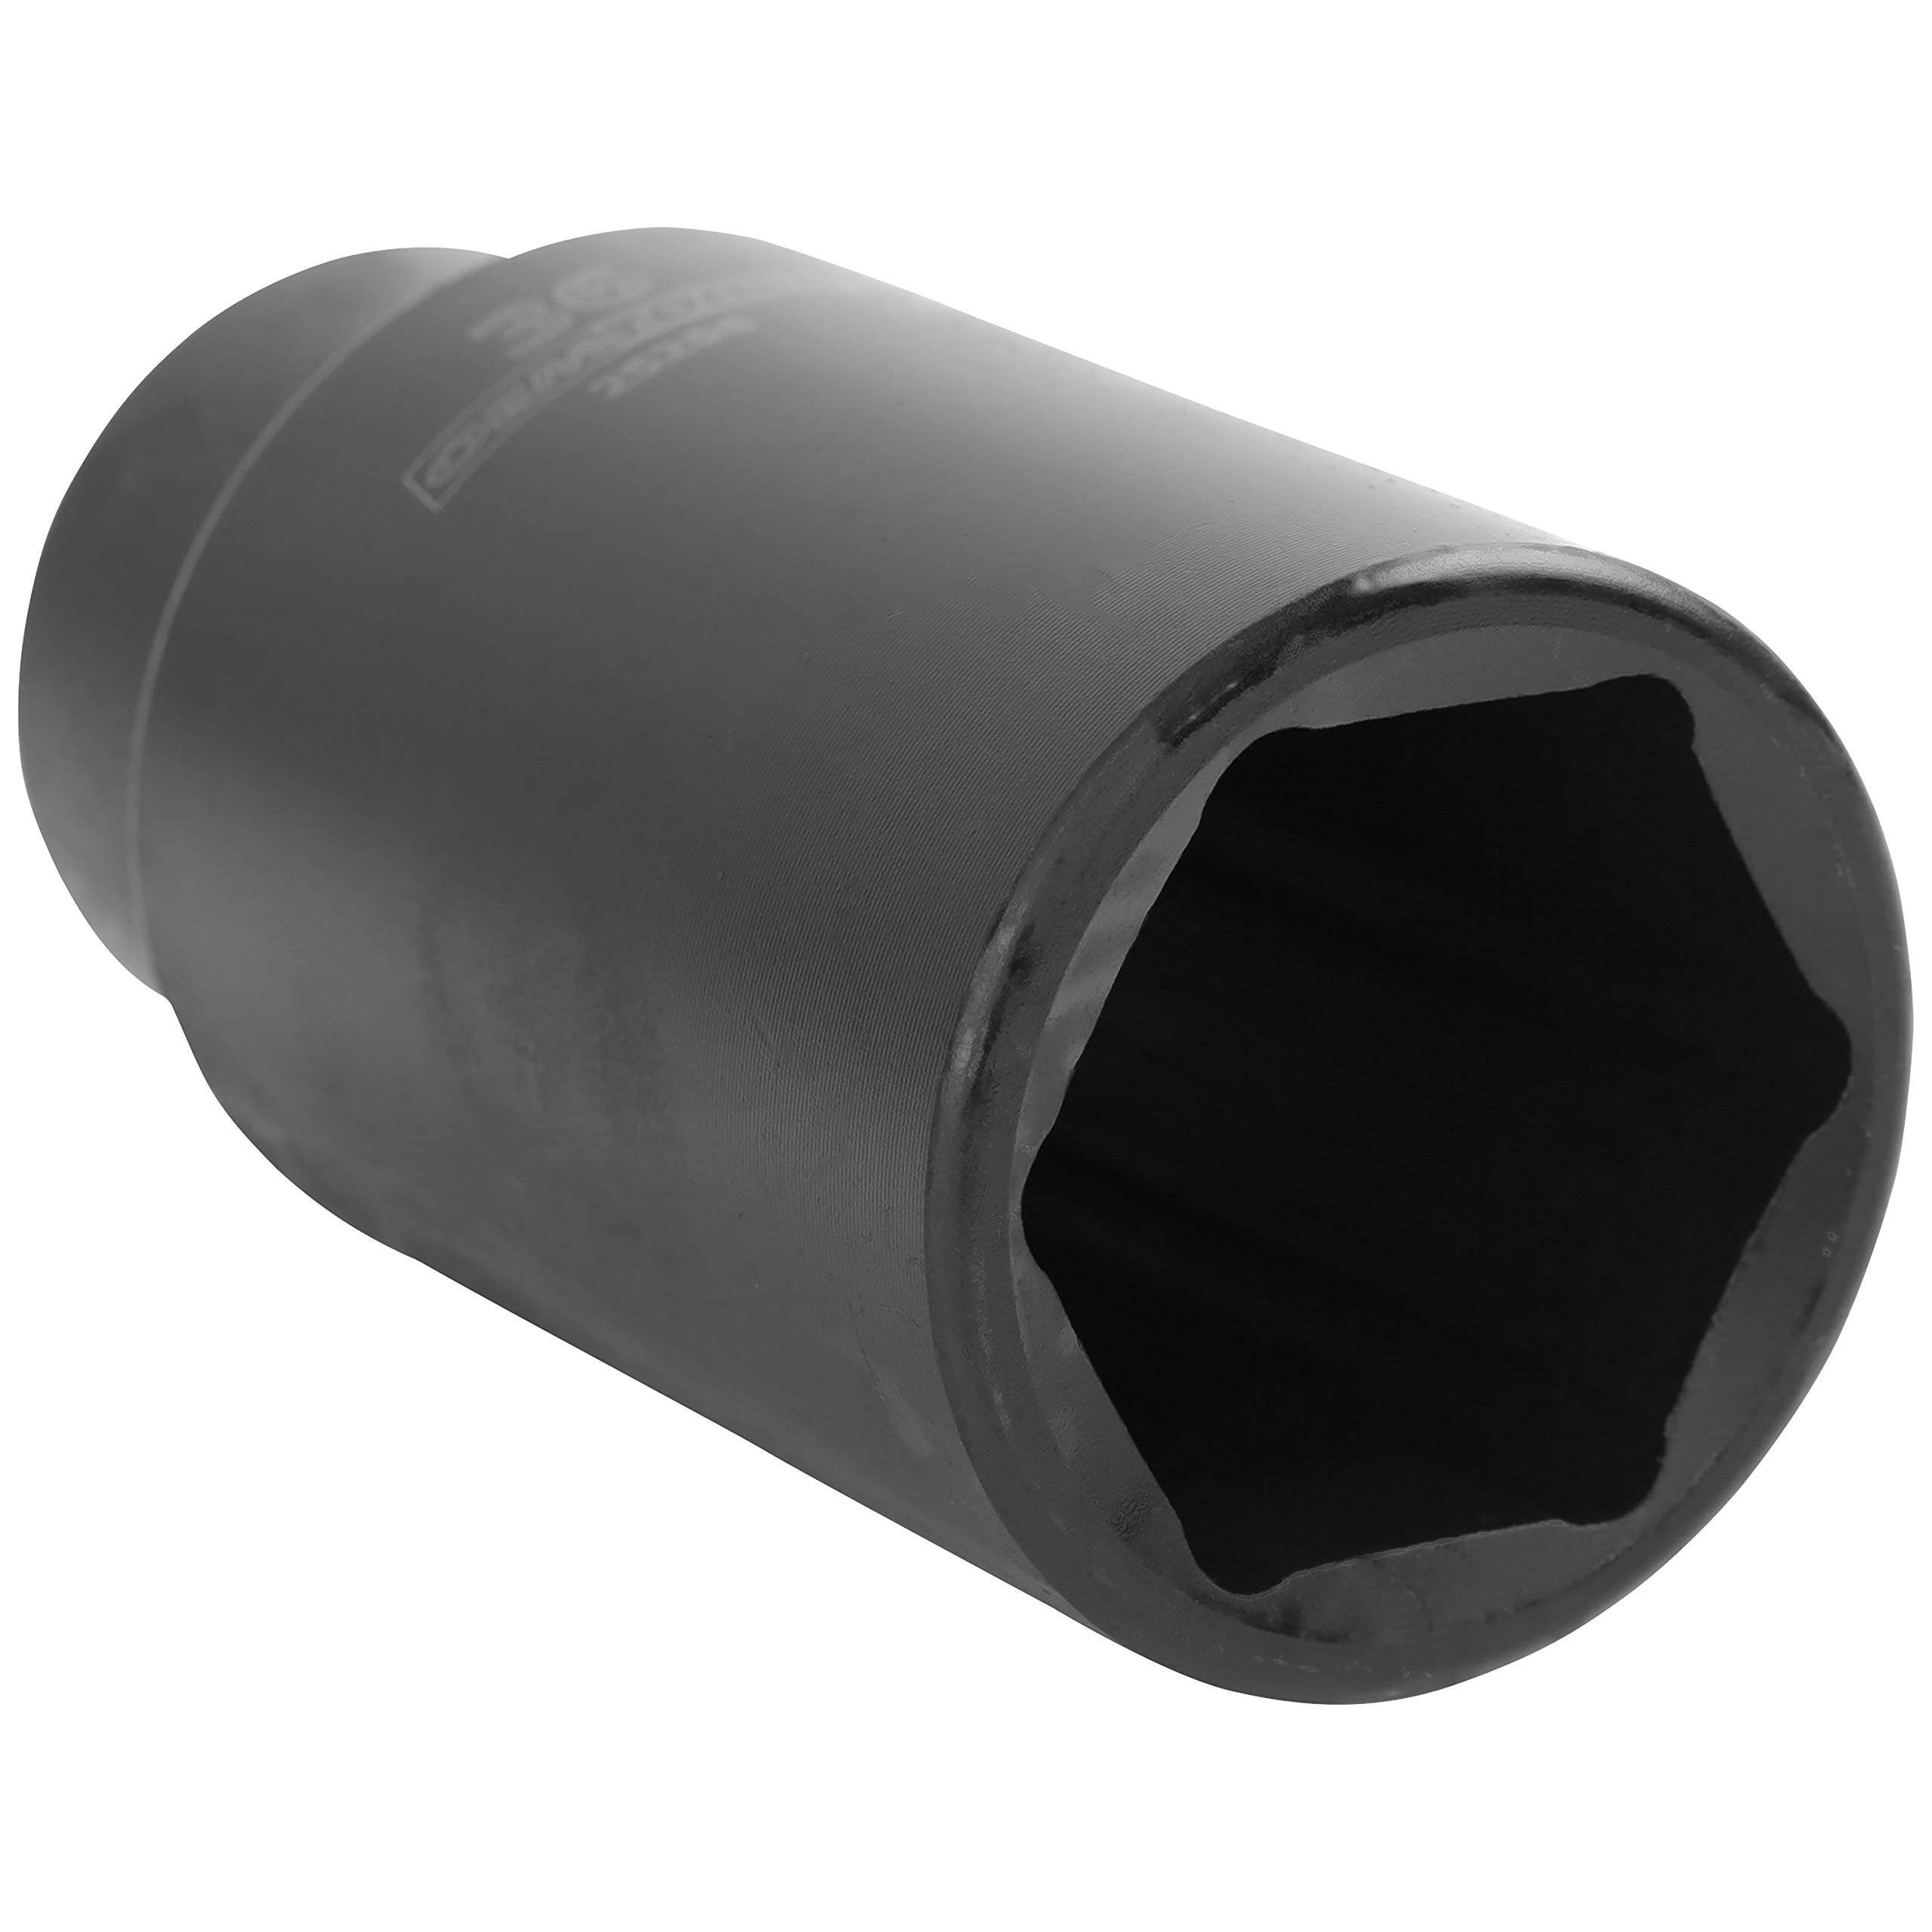 OEMTOOLS 25206 36mm Axle Nut Socket 1/2 Inch Driver